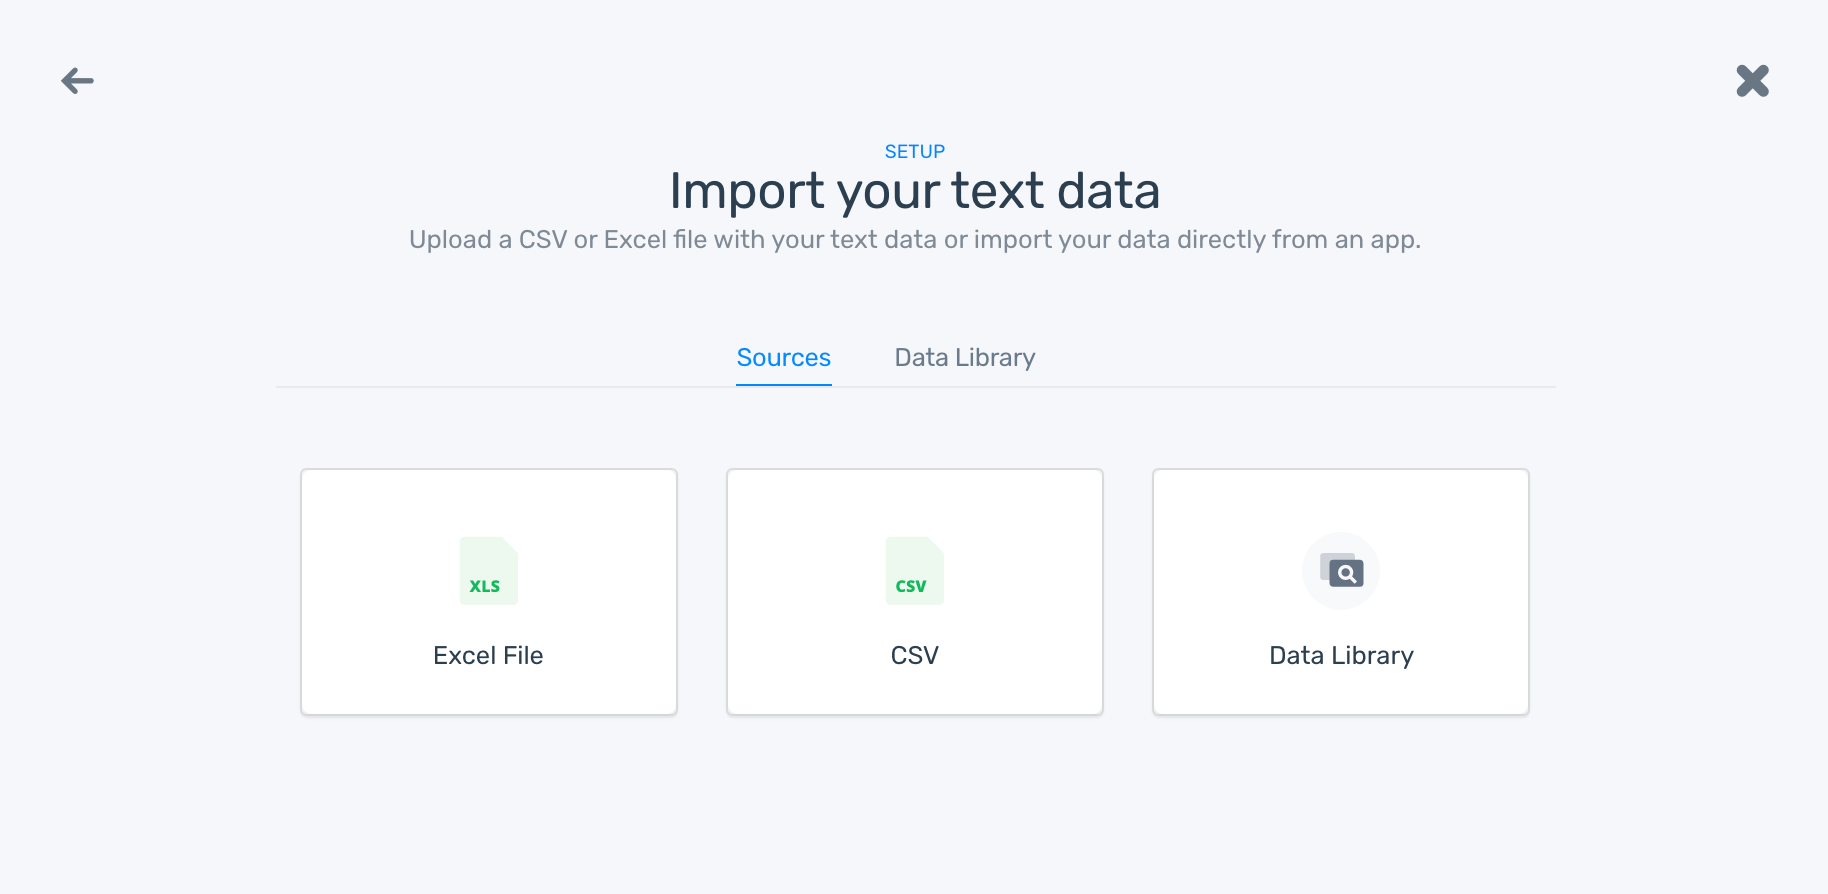 Model builder: the step to import Twitter data by uploading an Excel or CSV file